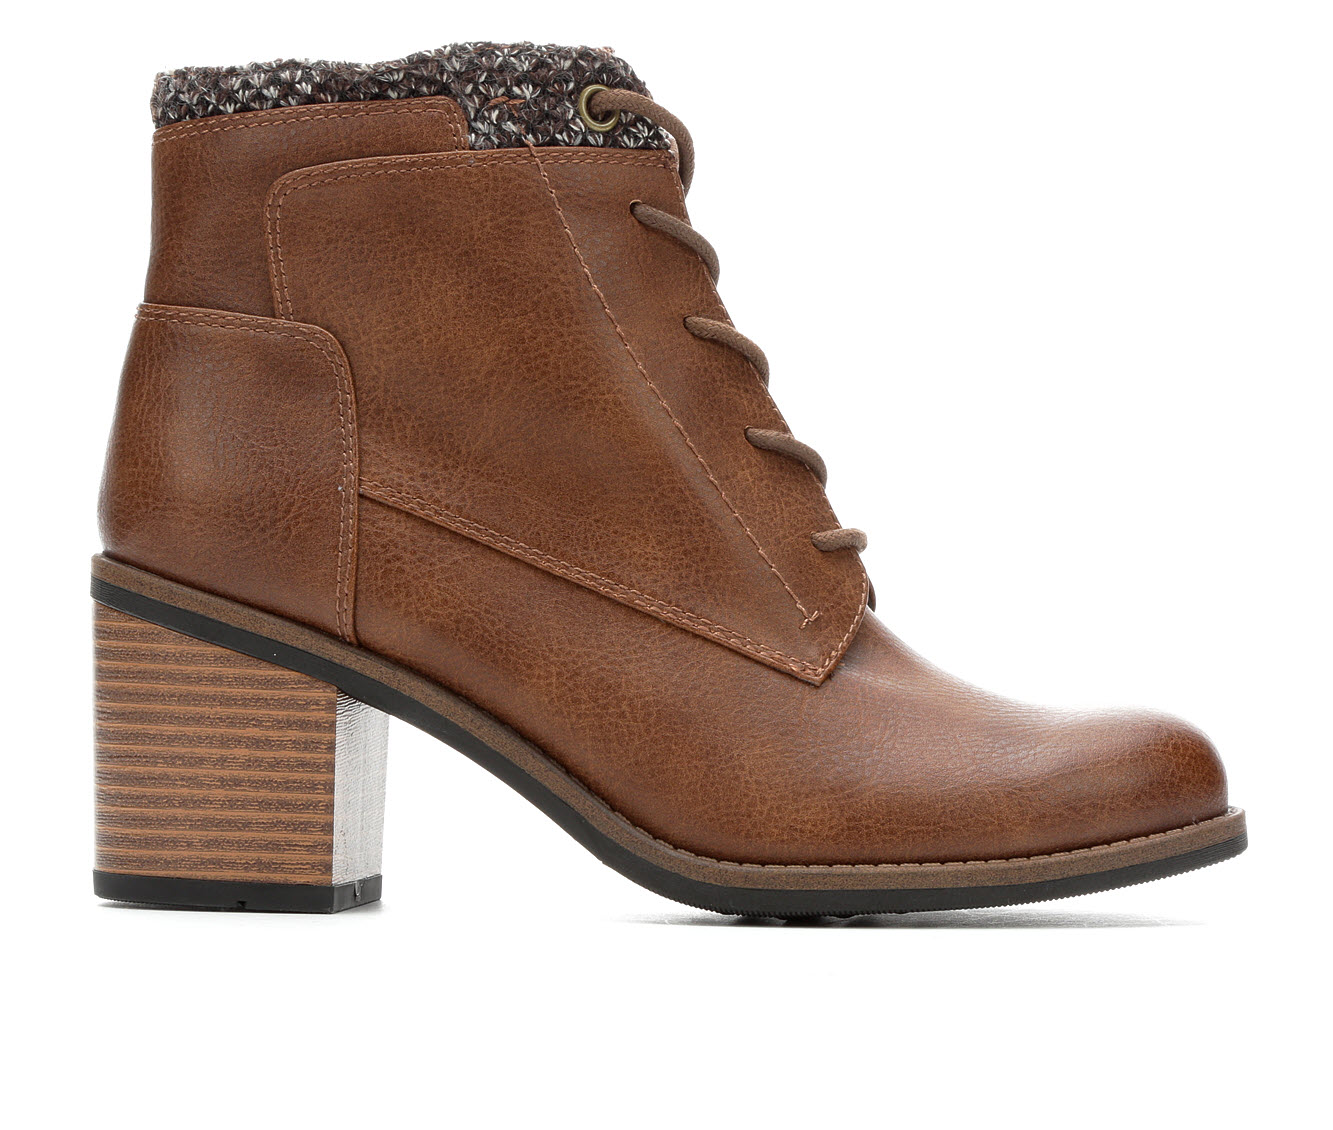 White Mountain Desmen Women's Boots (Brown - Faux Leather)